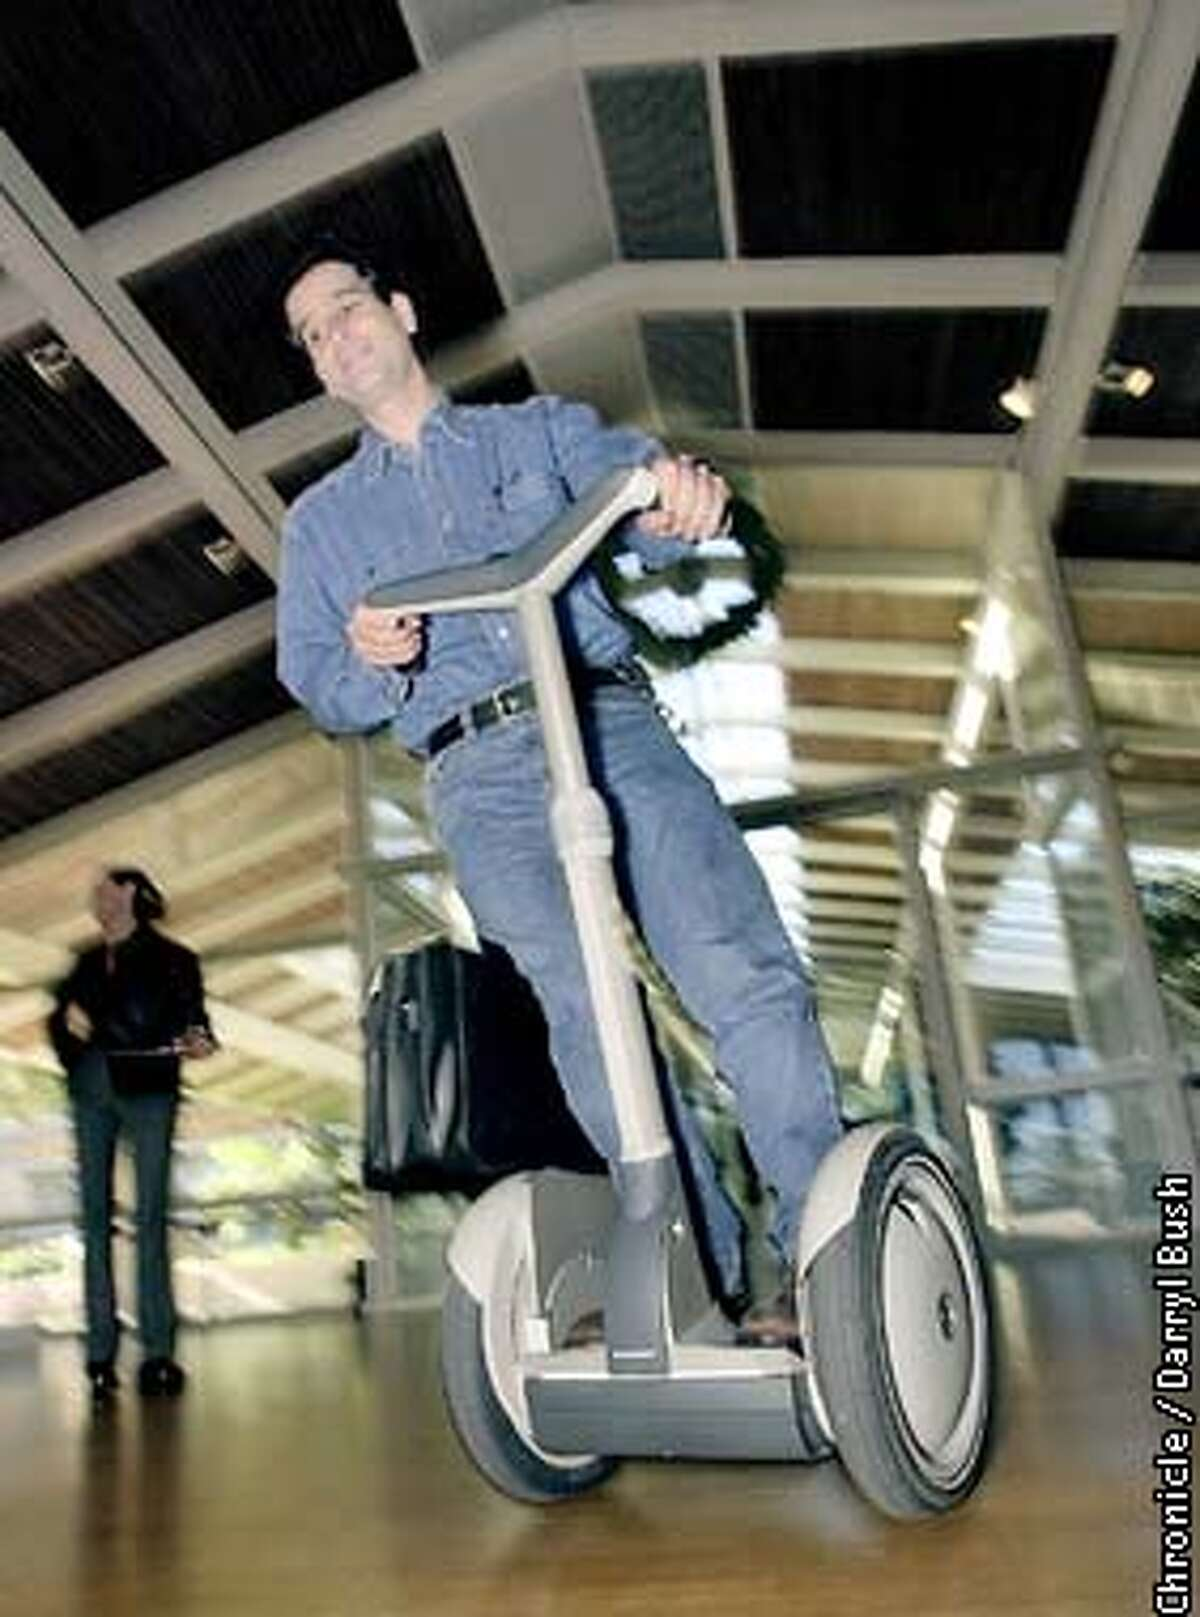 Inventor as well as CEO, Dean Kamen of Segway LLC, rides his Segway HT, the world's first dynamic self-balancing human transporter, around a room in Menlo Park. Chronicle Photo by Darryl Bush